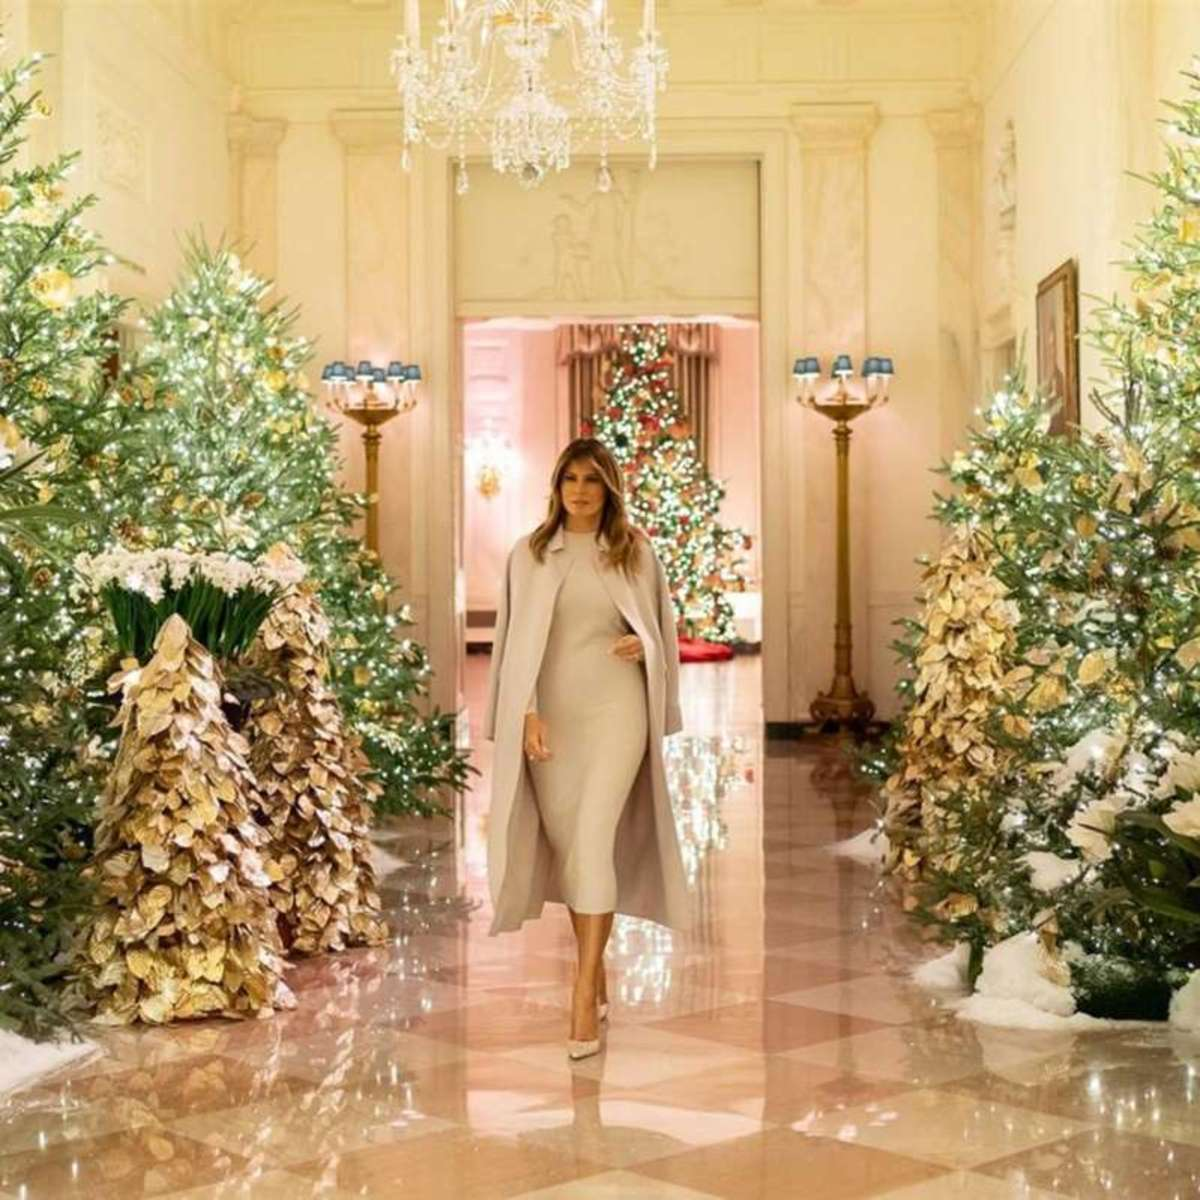 White House at Christmastime 2019